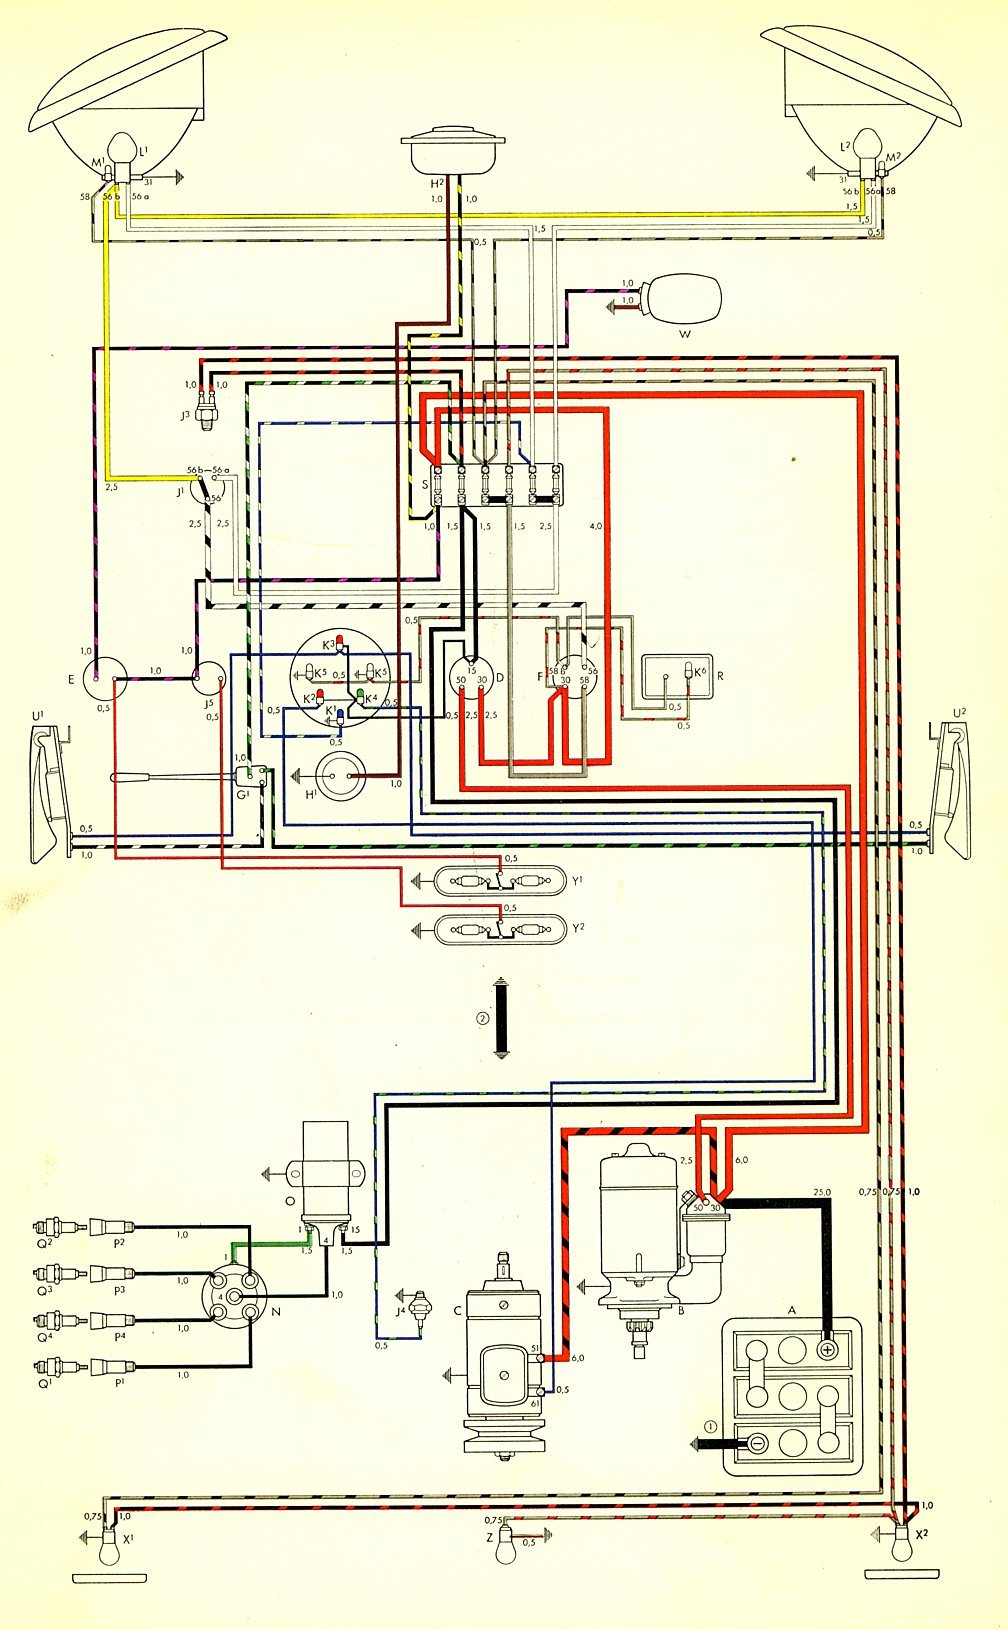 bus_59 wiring diagram for 1971 vw bus readingrat net 1978 vw bus fuse box diagram at mr168.co